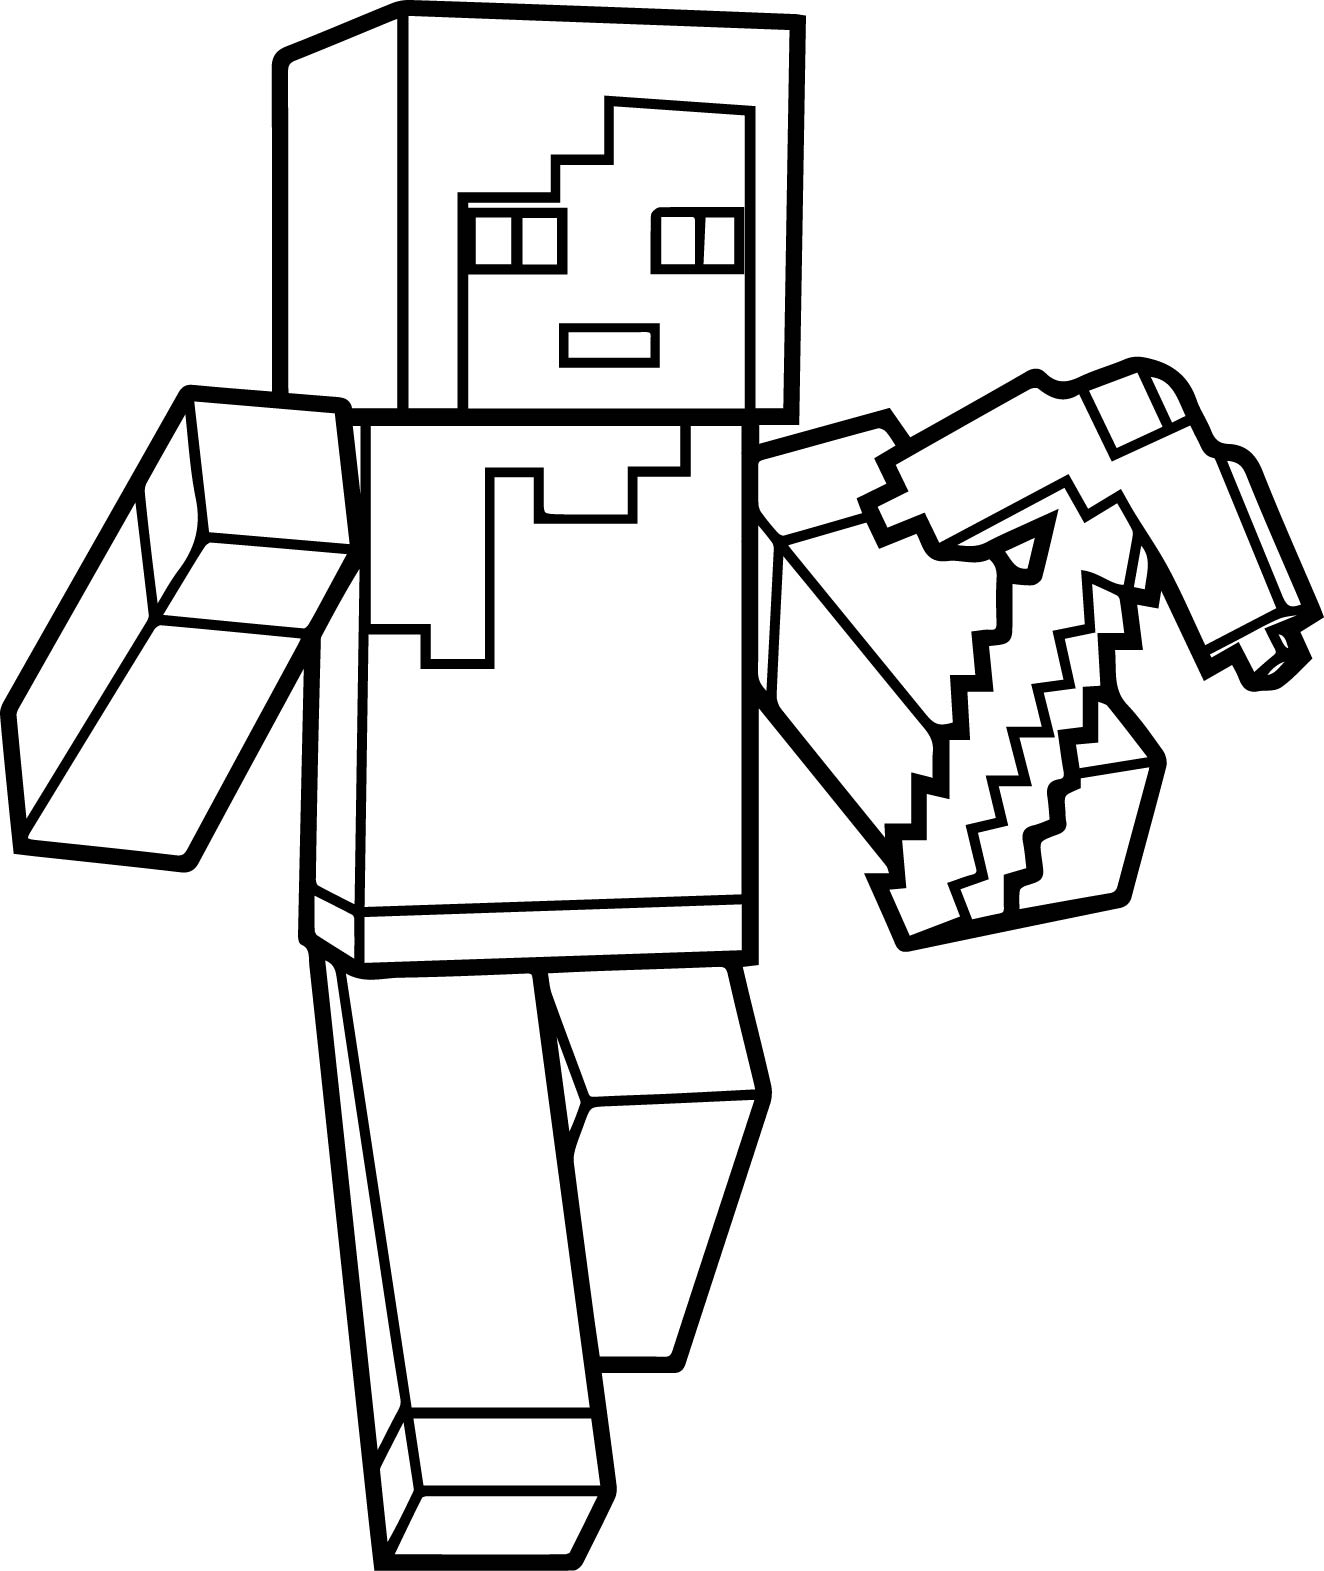 minecraft colouring pages free minecraft coloring pages dantdm at getcoloringscom free colouring pages minecraft free